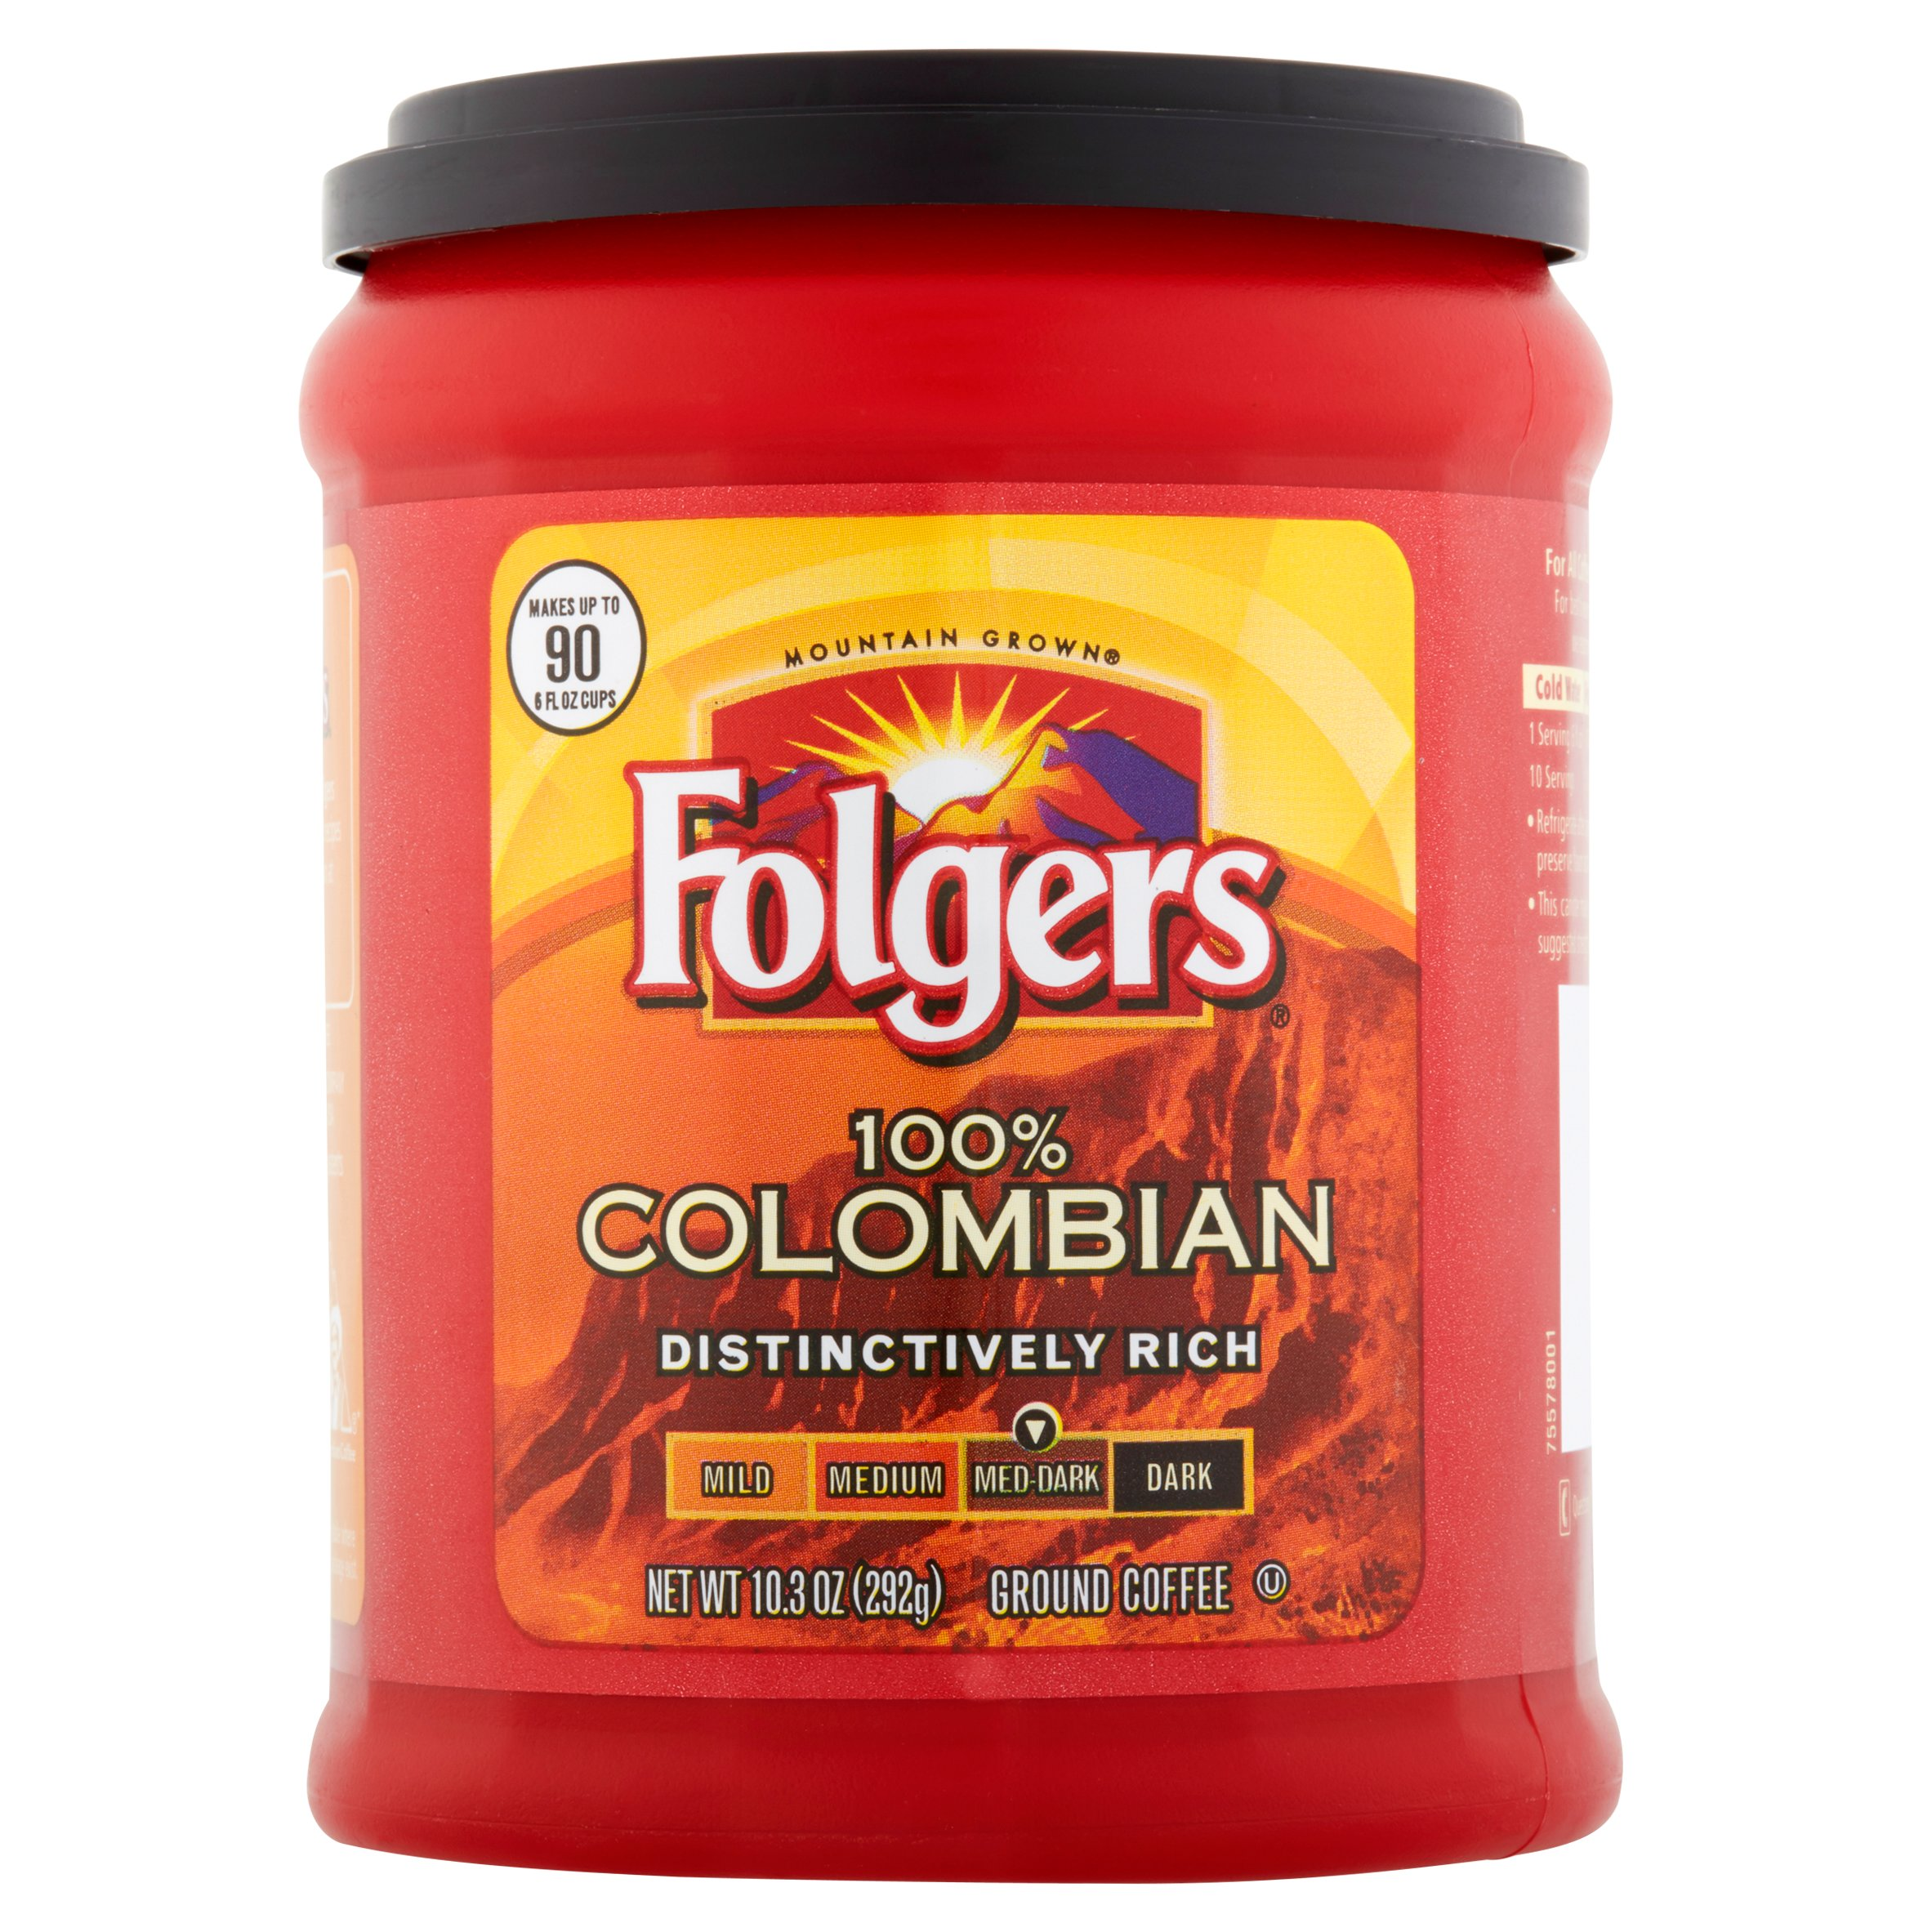 Folgers 100% Colombian Ground Coffee Med-Dark, 10.3 OZ